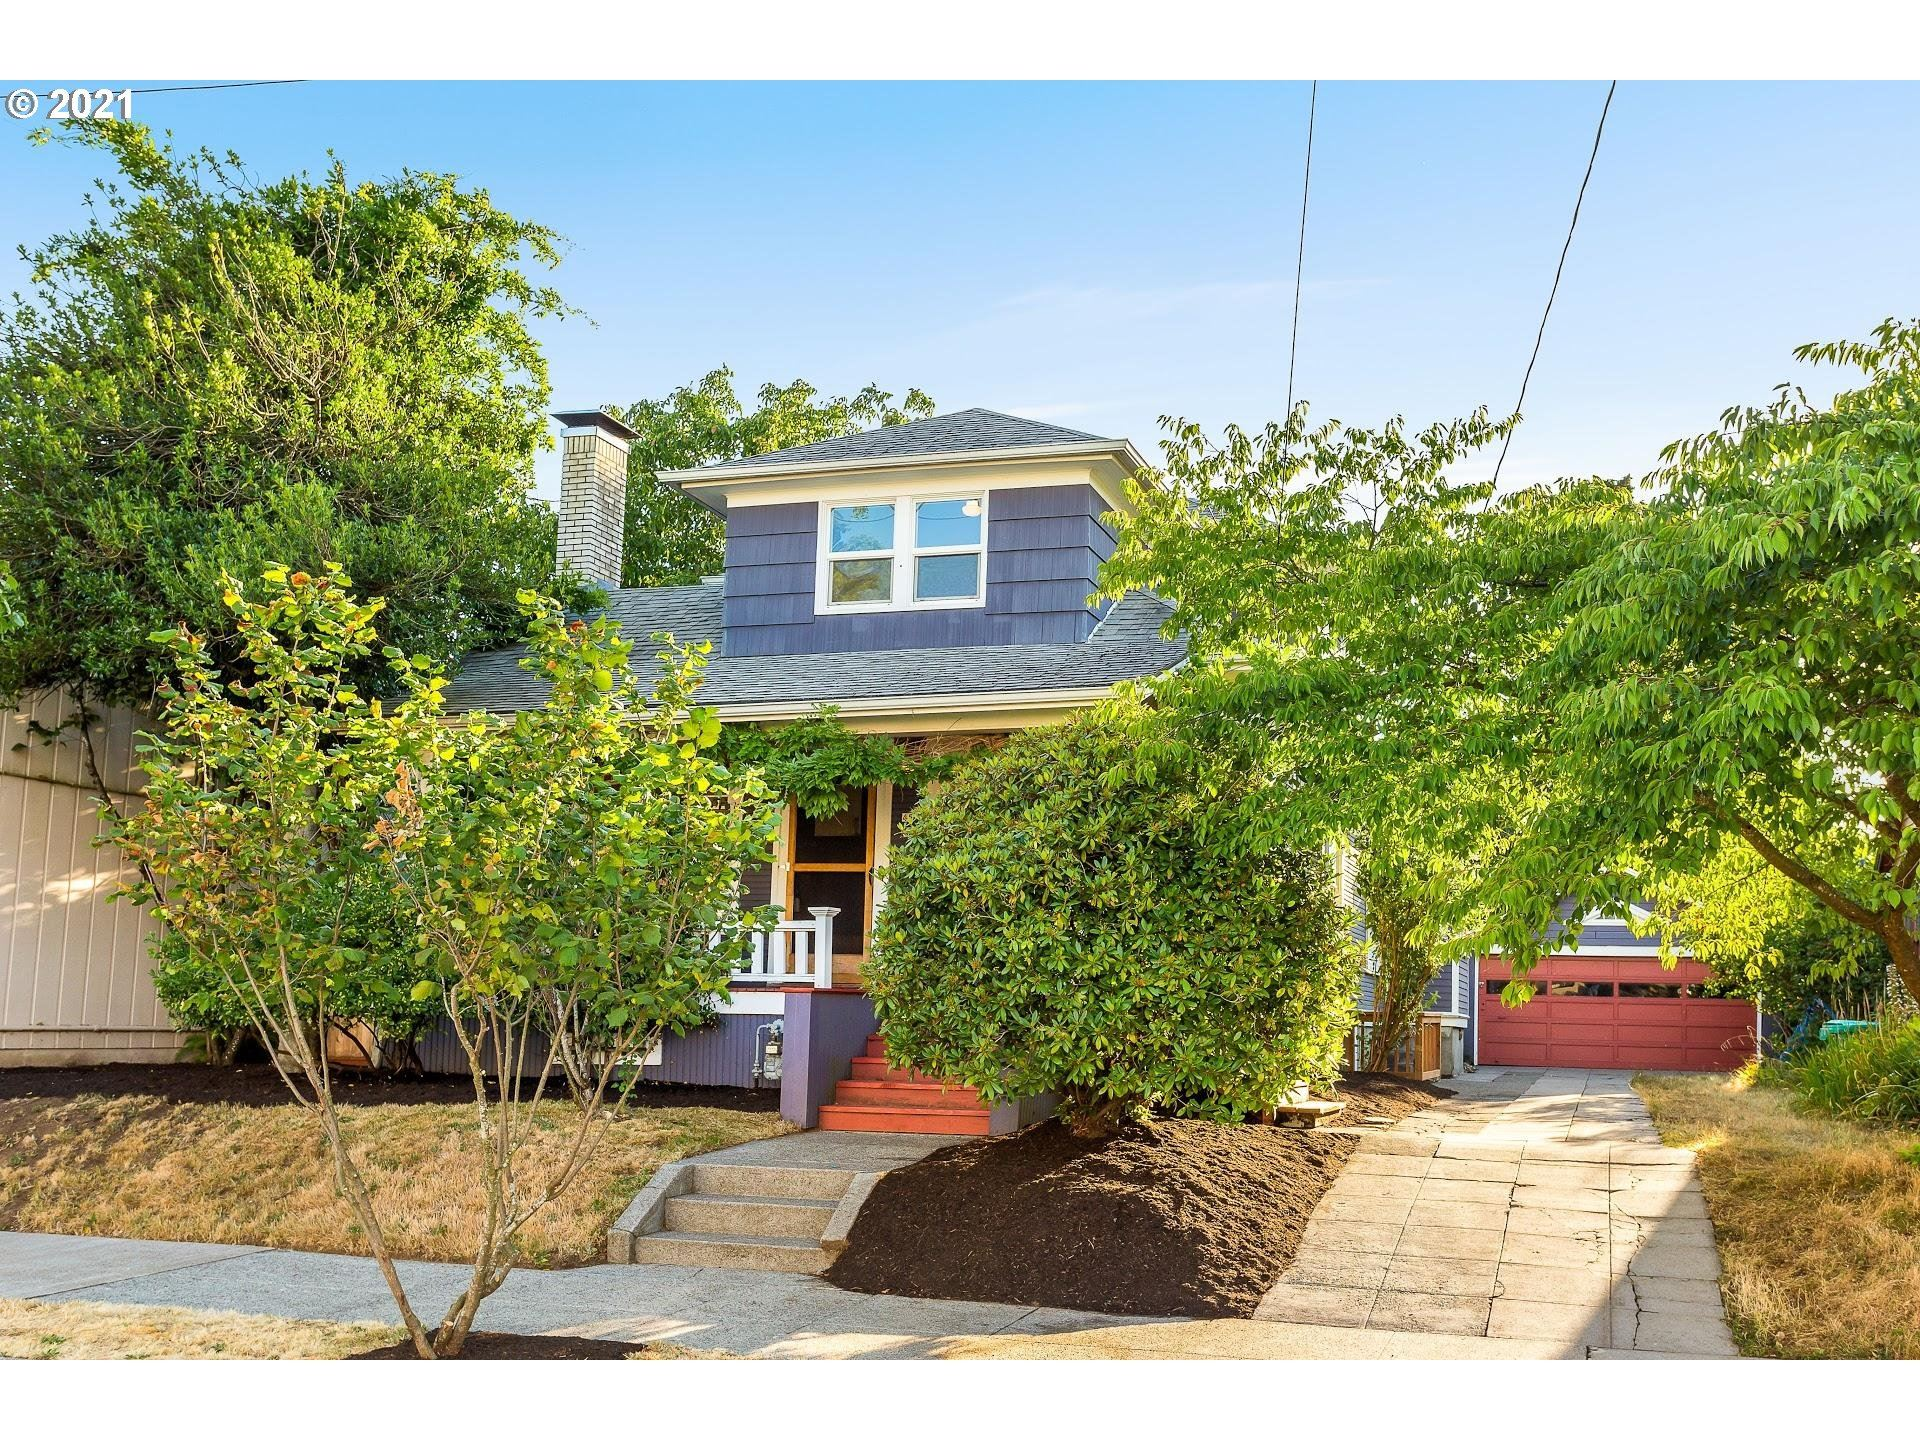 45 SE 80TH AVE, Portland, OR 97215 - MLS#: 21134184